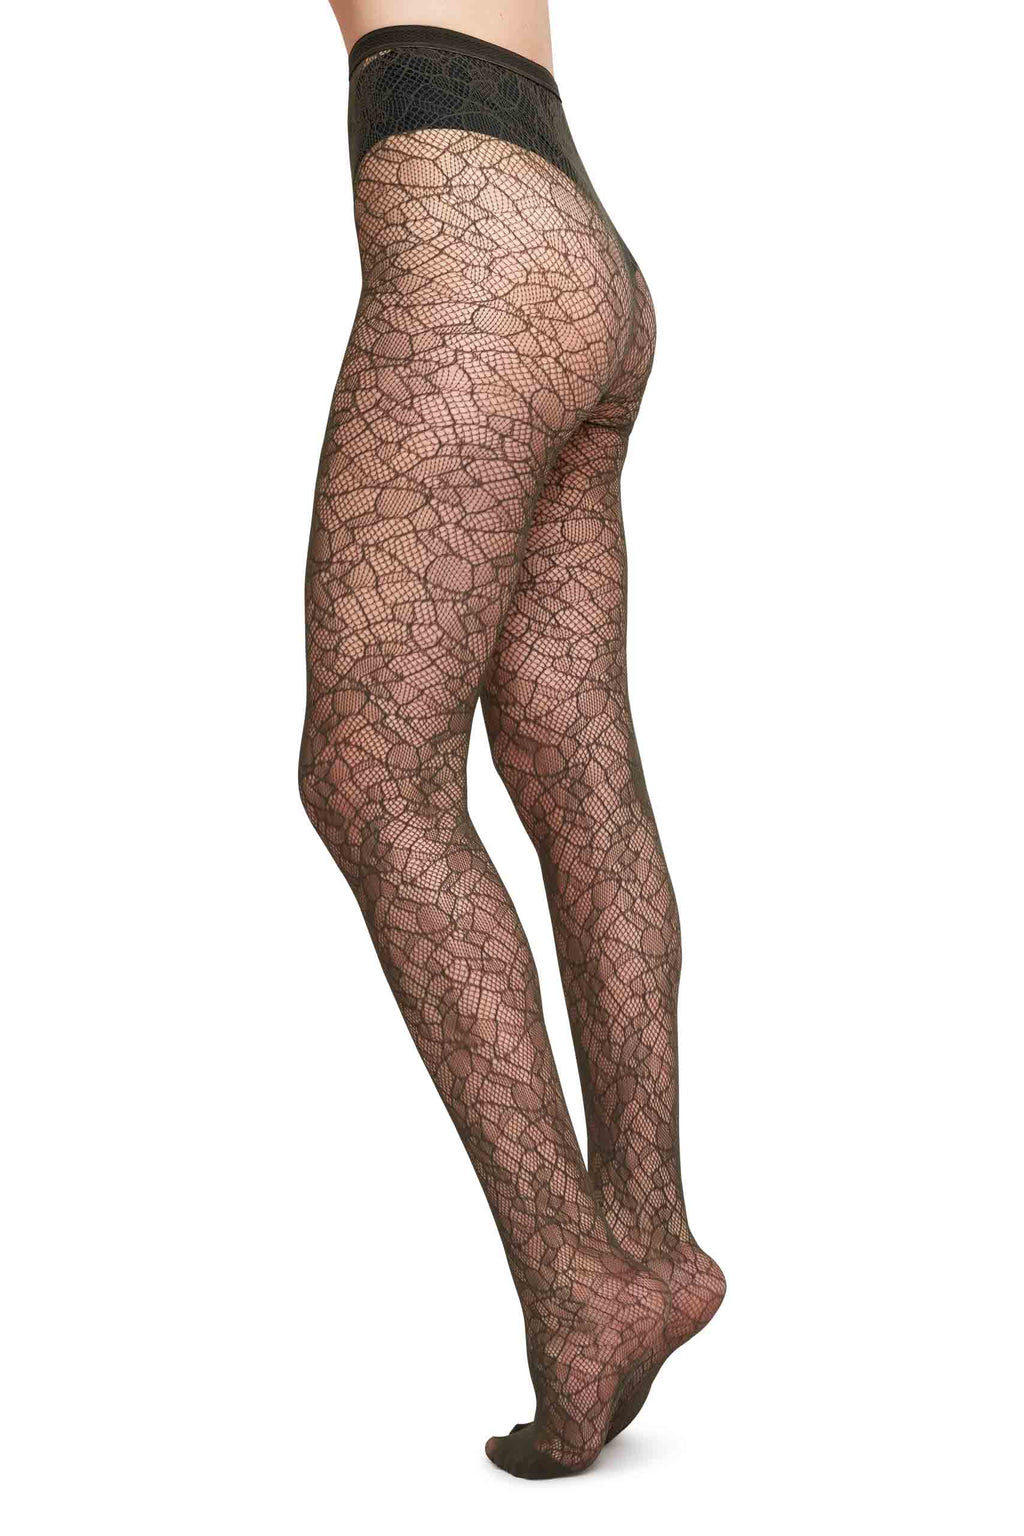 Edith Lace Tights | Dark Olive